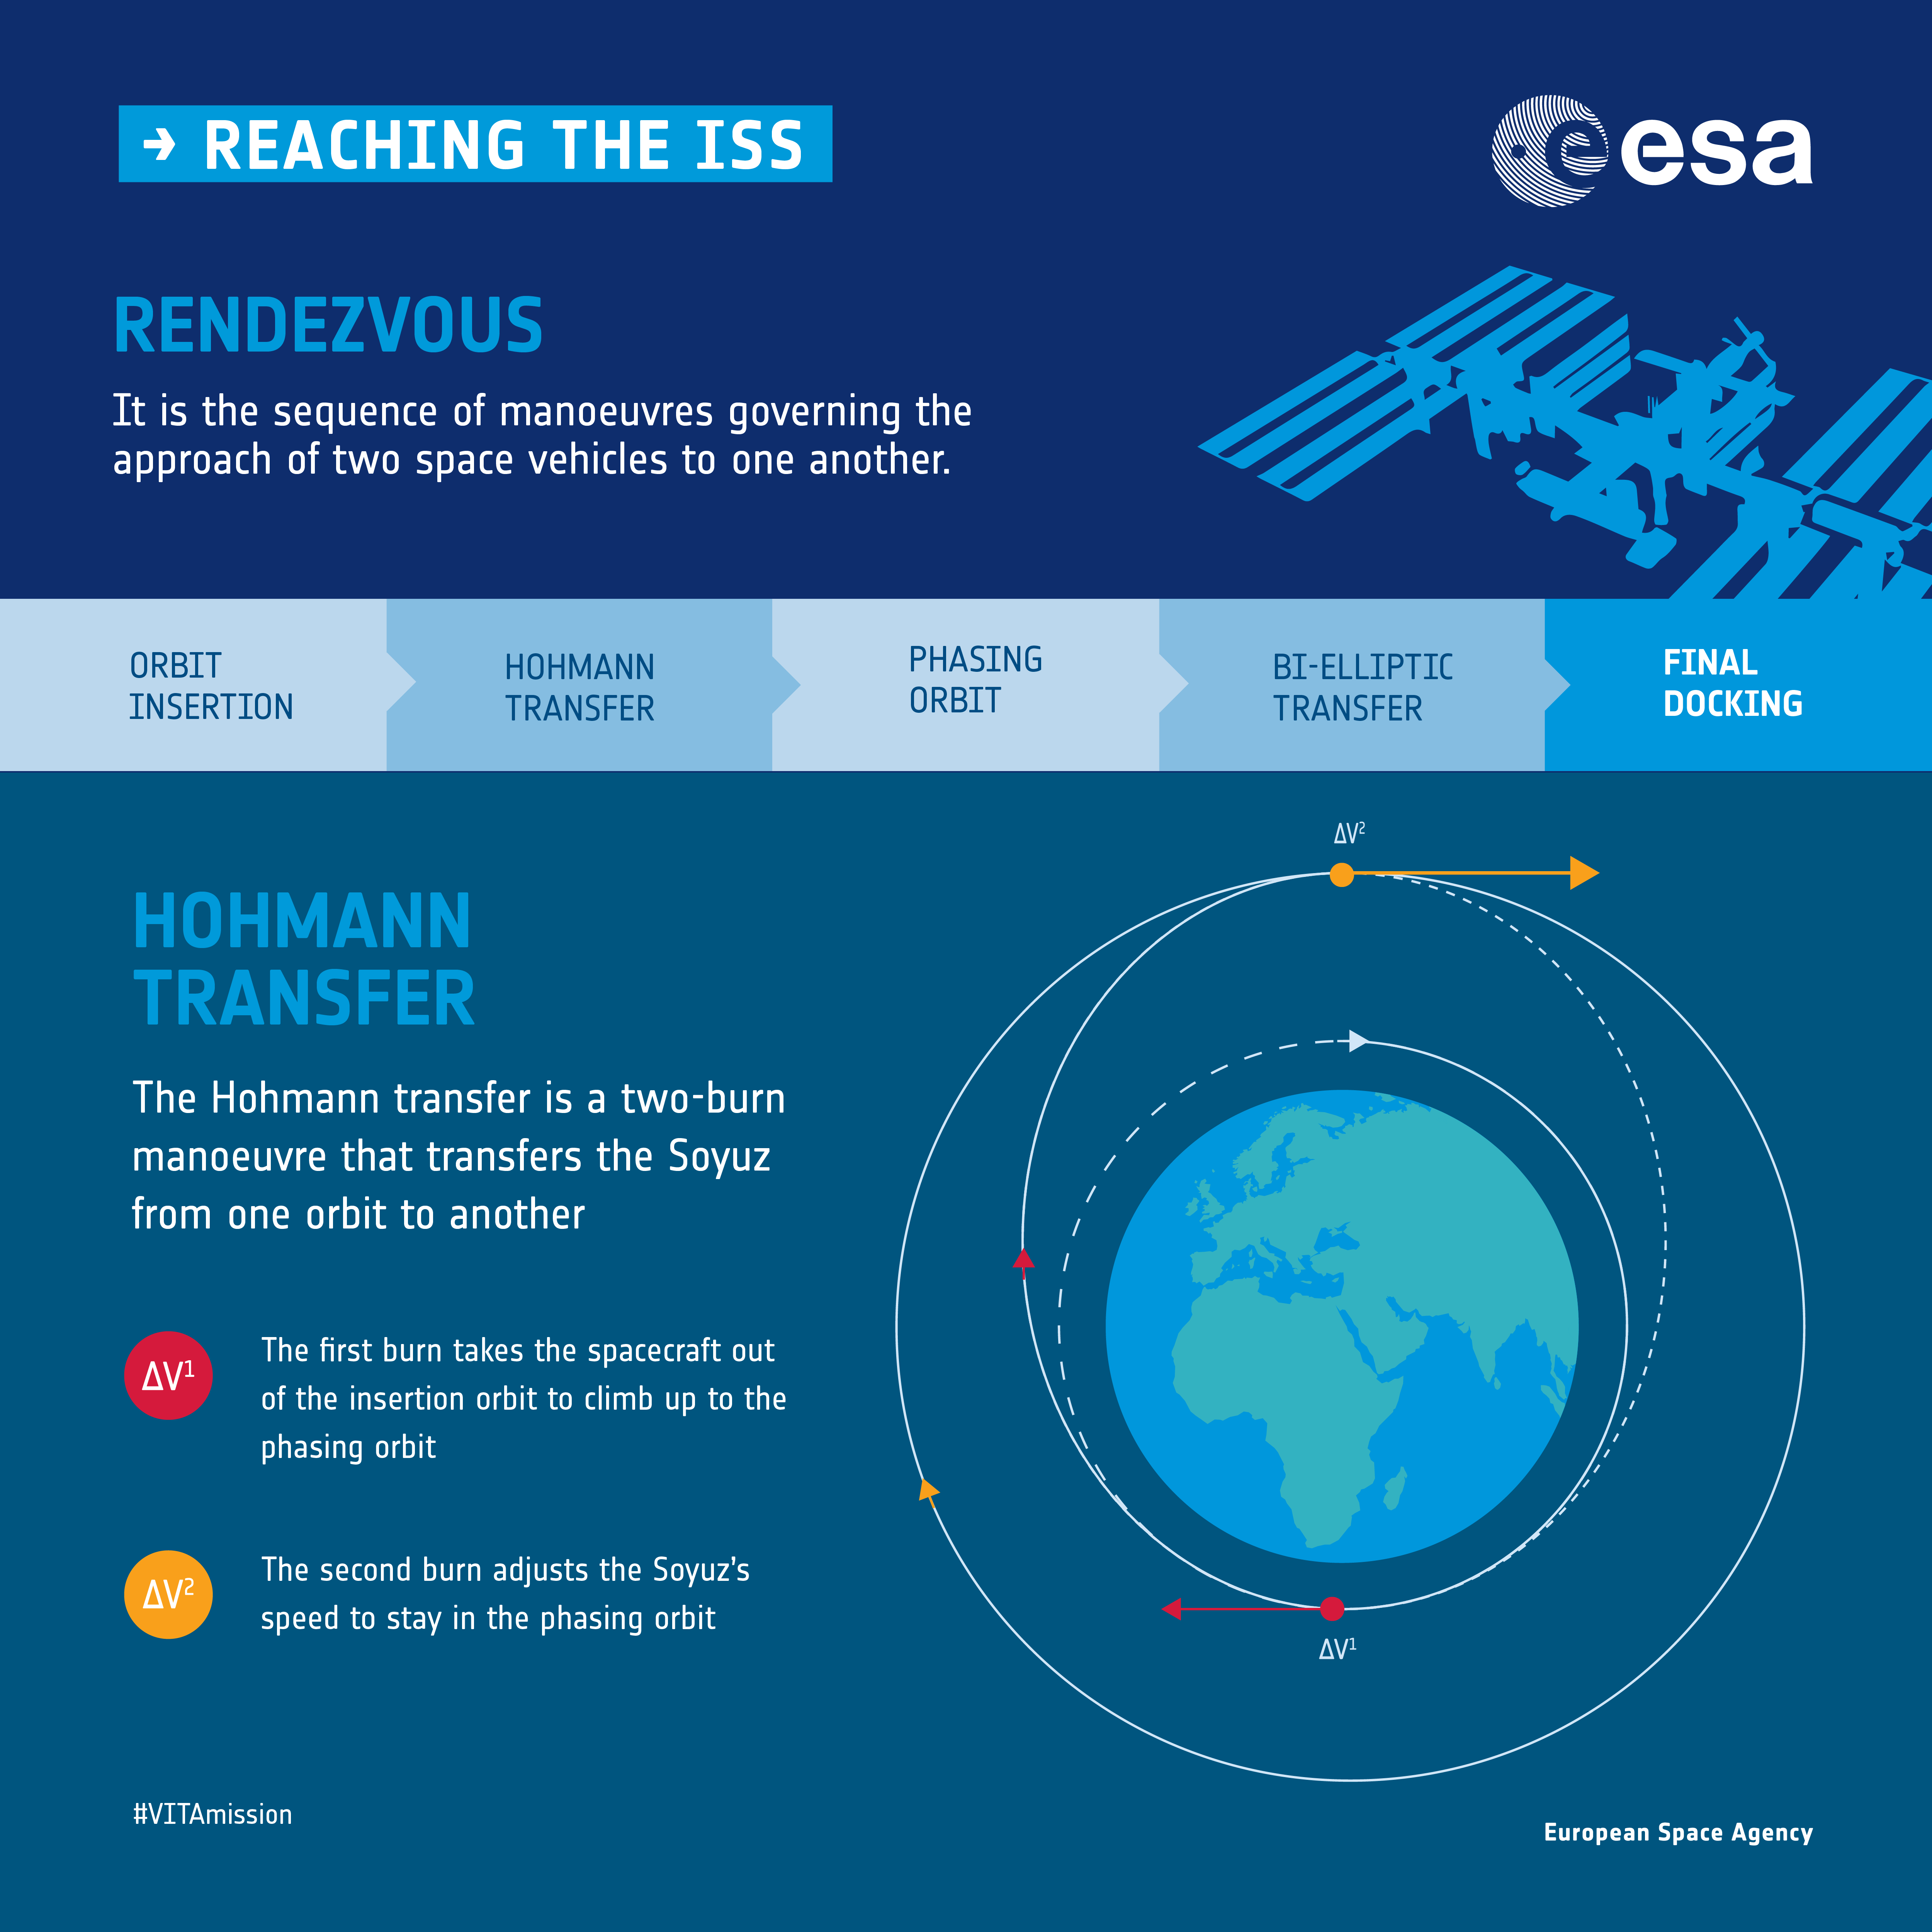 Reaching the ISS: Vita mission infographic